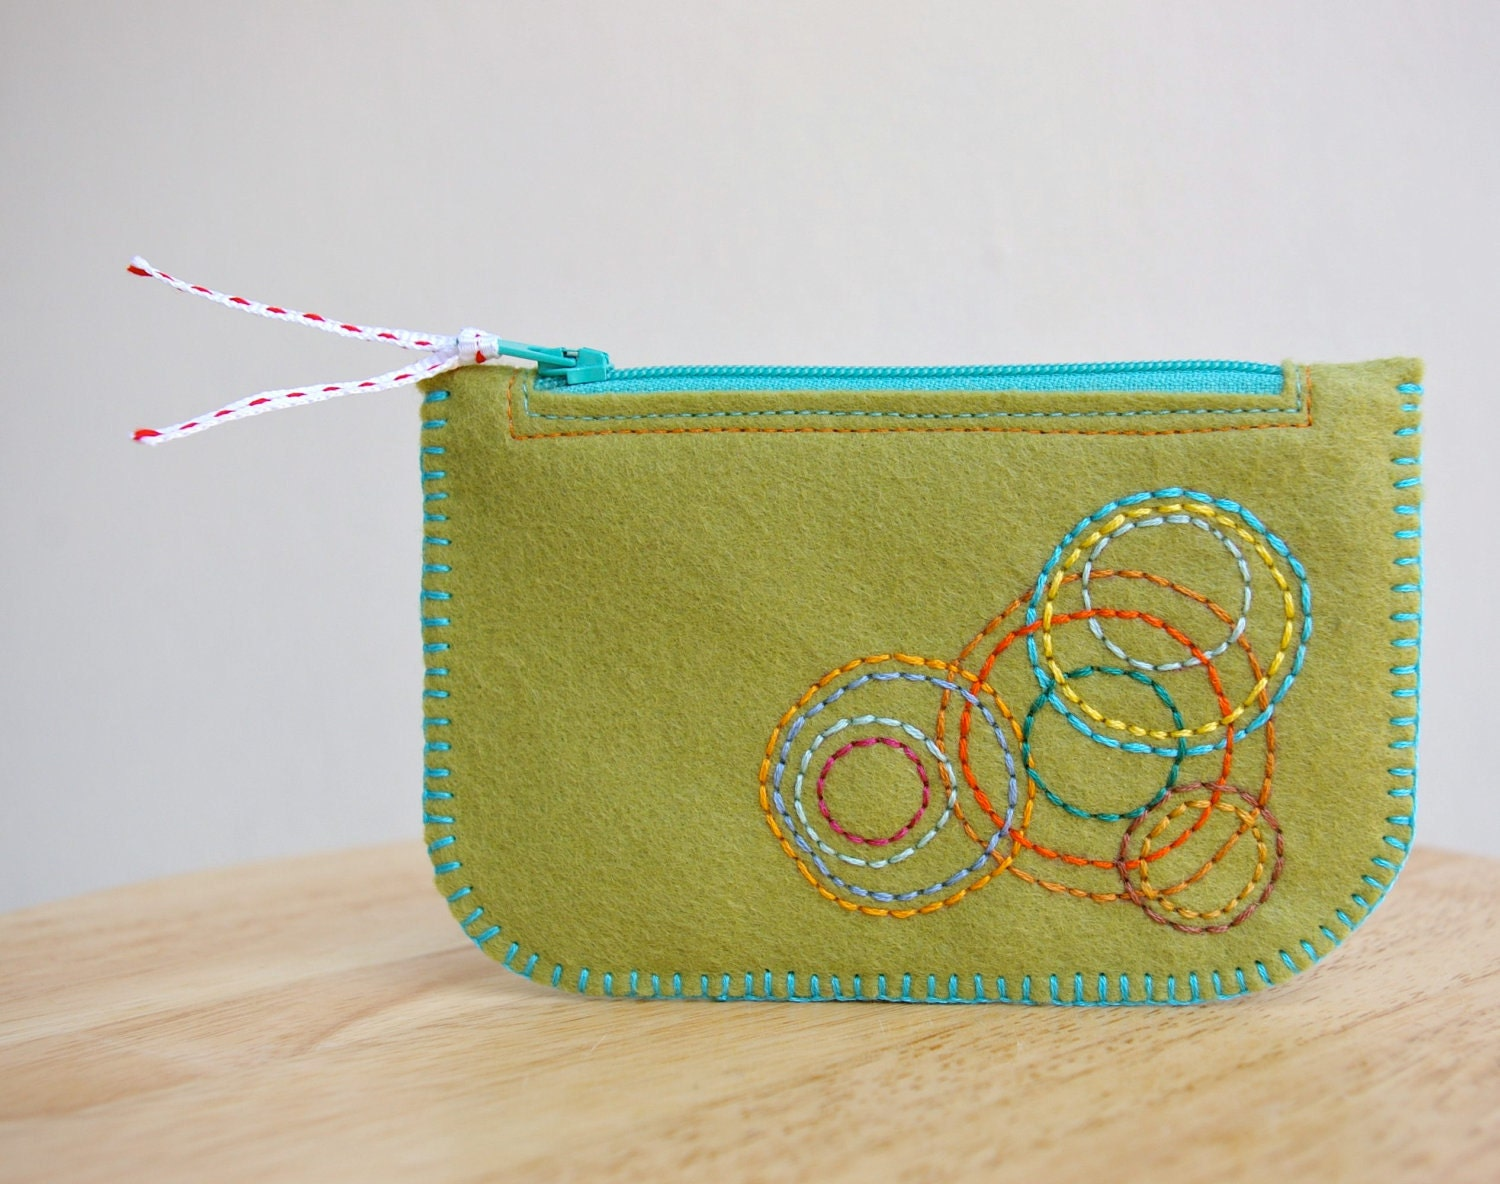 Colorful Circles: Made To Order Hand Embroidered Wool Felt Coin Purse or iPhone Cozy by LoftFullOfGoodies